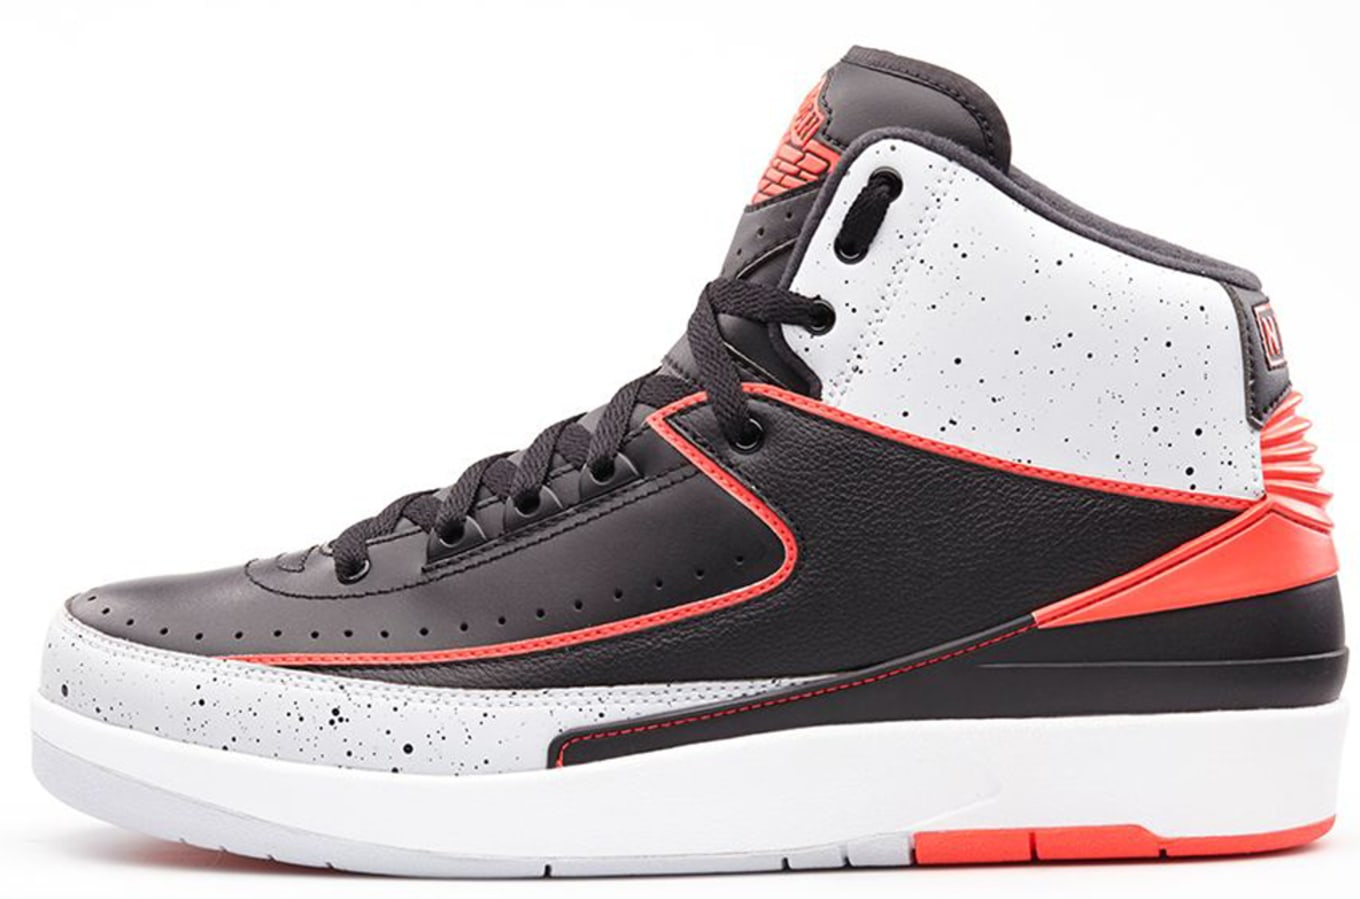 Air Jordan 2: The Definitive Guide to Colorways | Sole Collector